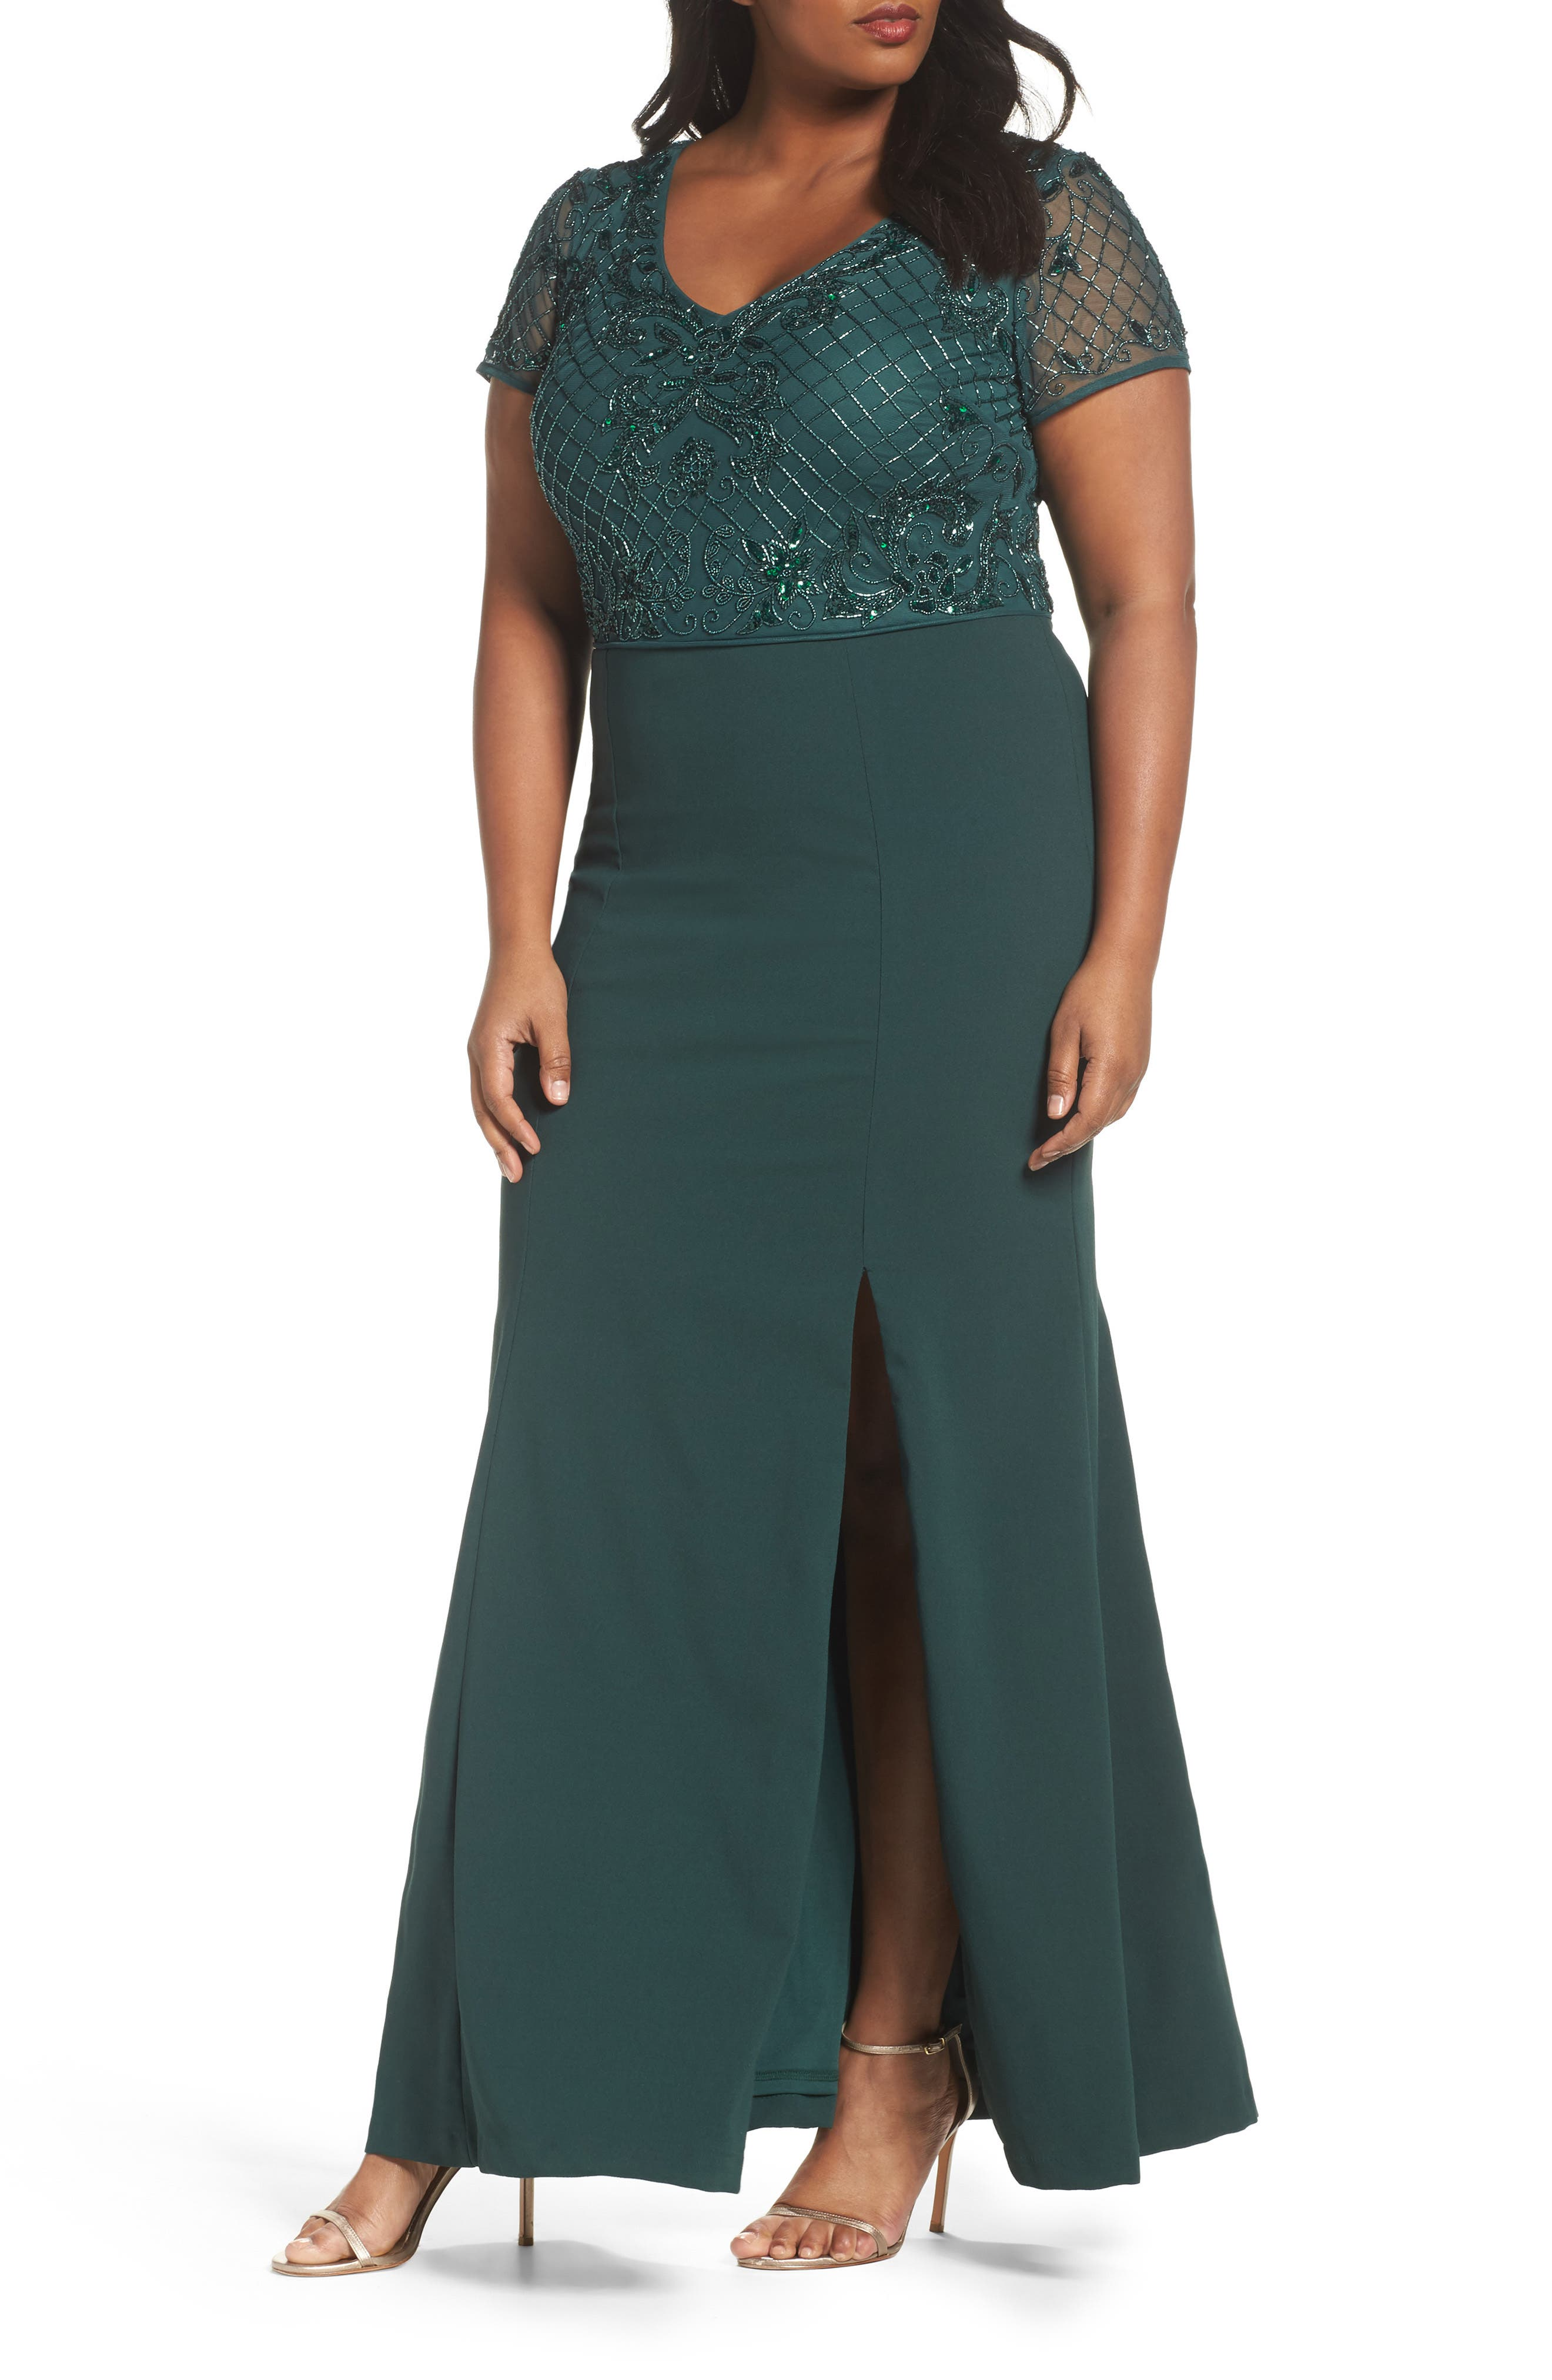 Alternate Image 1 Selected - Adrianna Papell Beaded Crepe Gown (Plus Size)